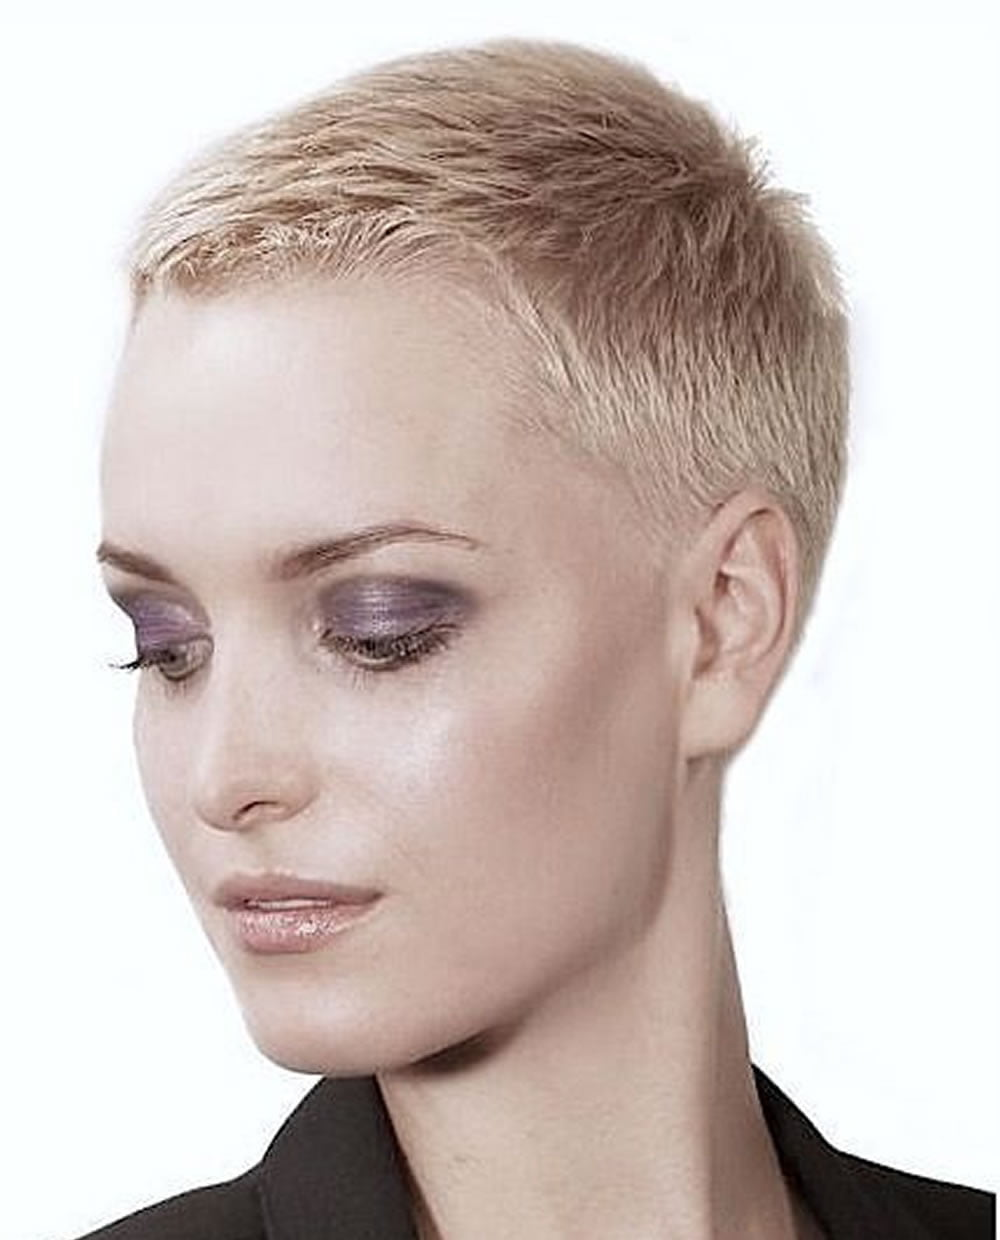 Top 100 Beautiful Short Haircuts for Women 2018 | Images+Videos ...